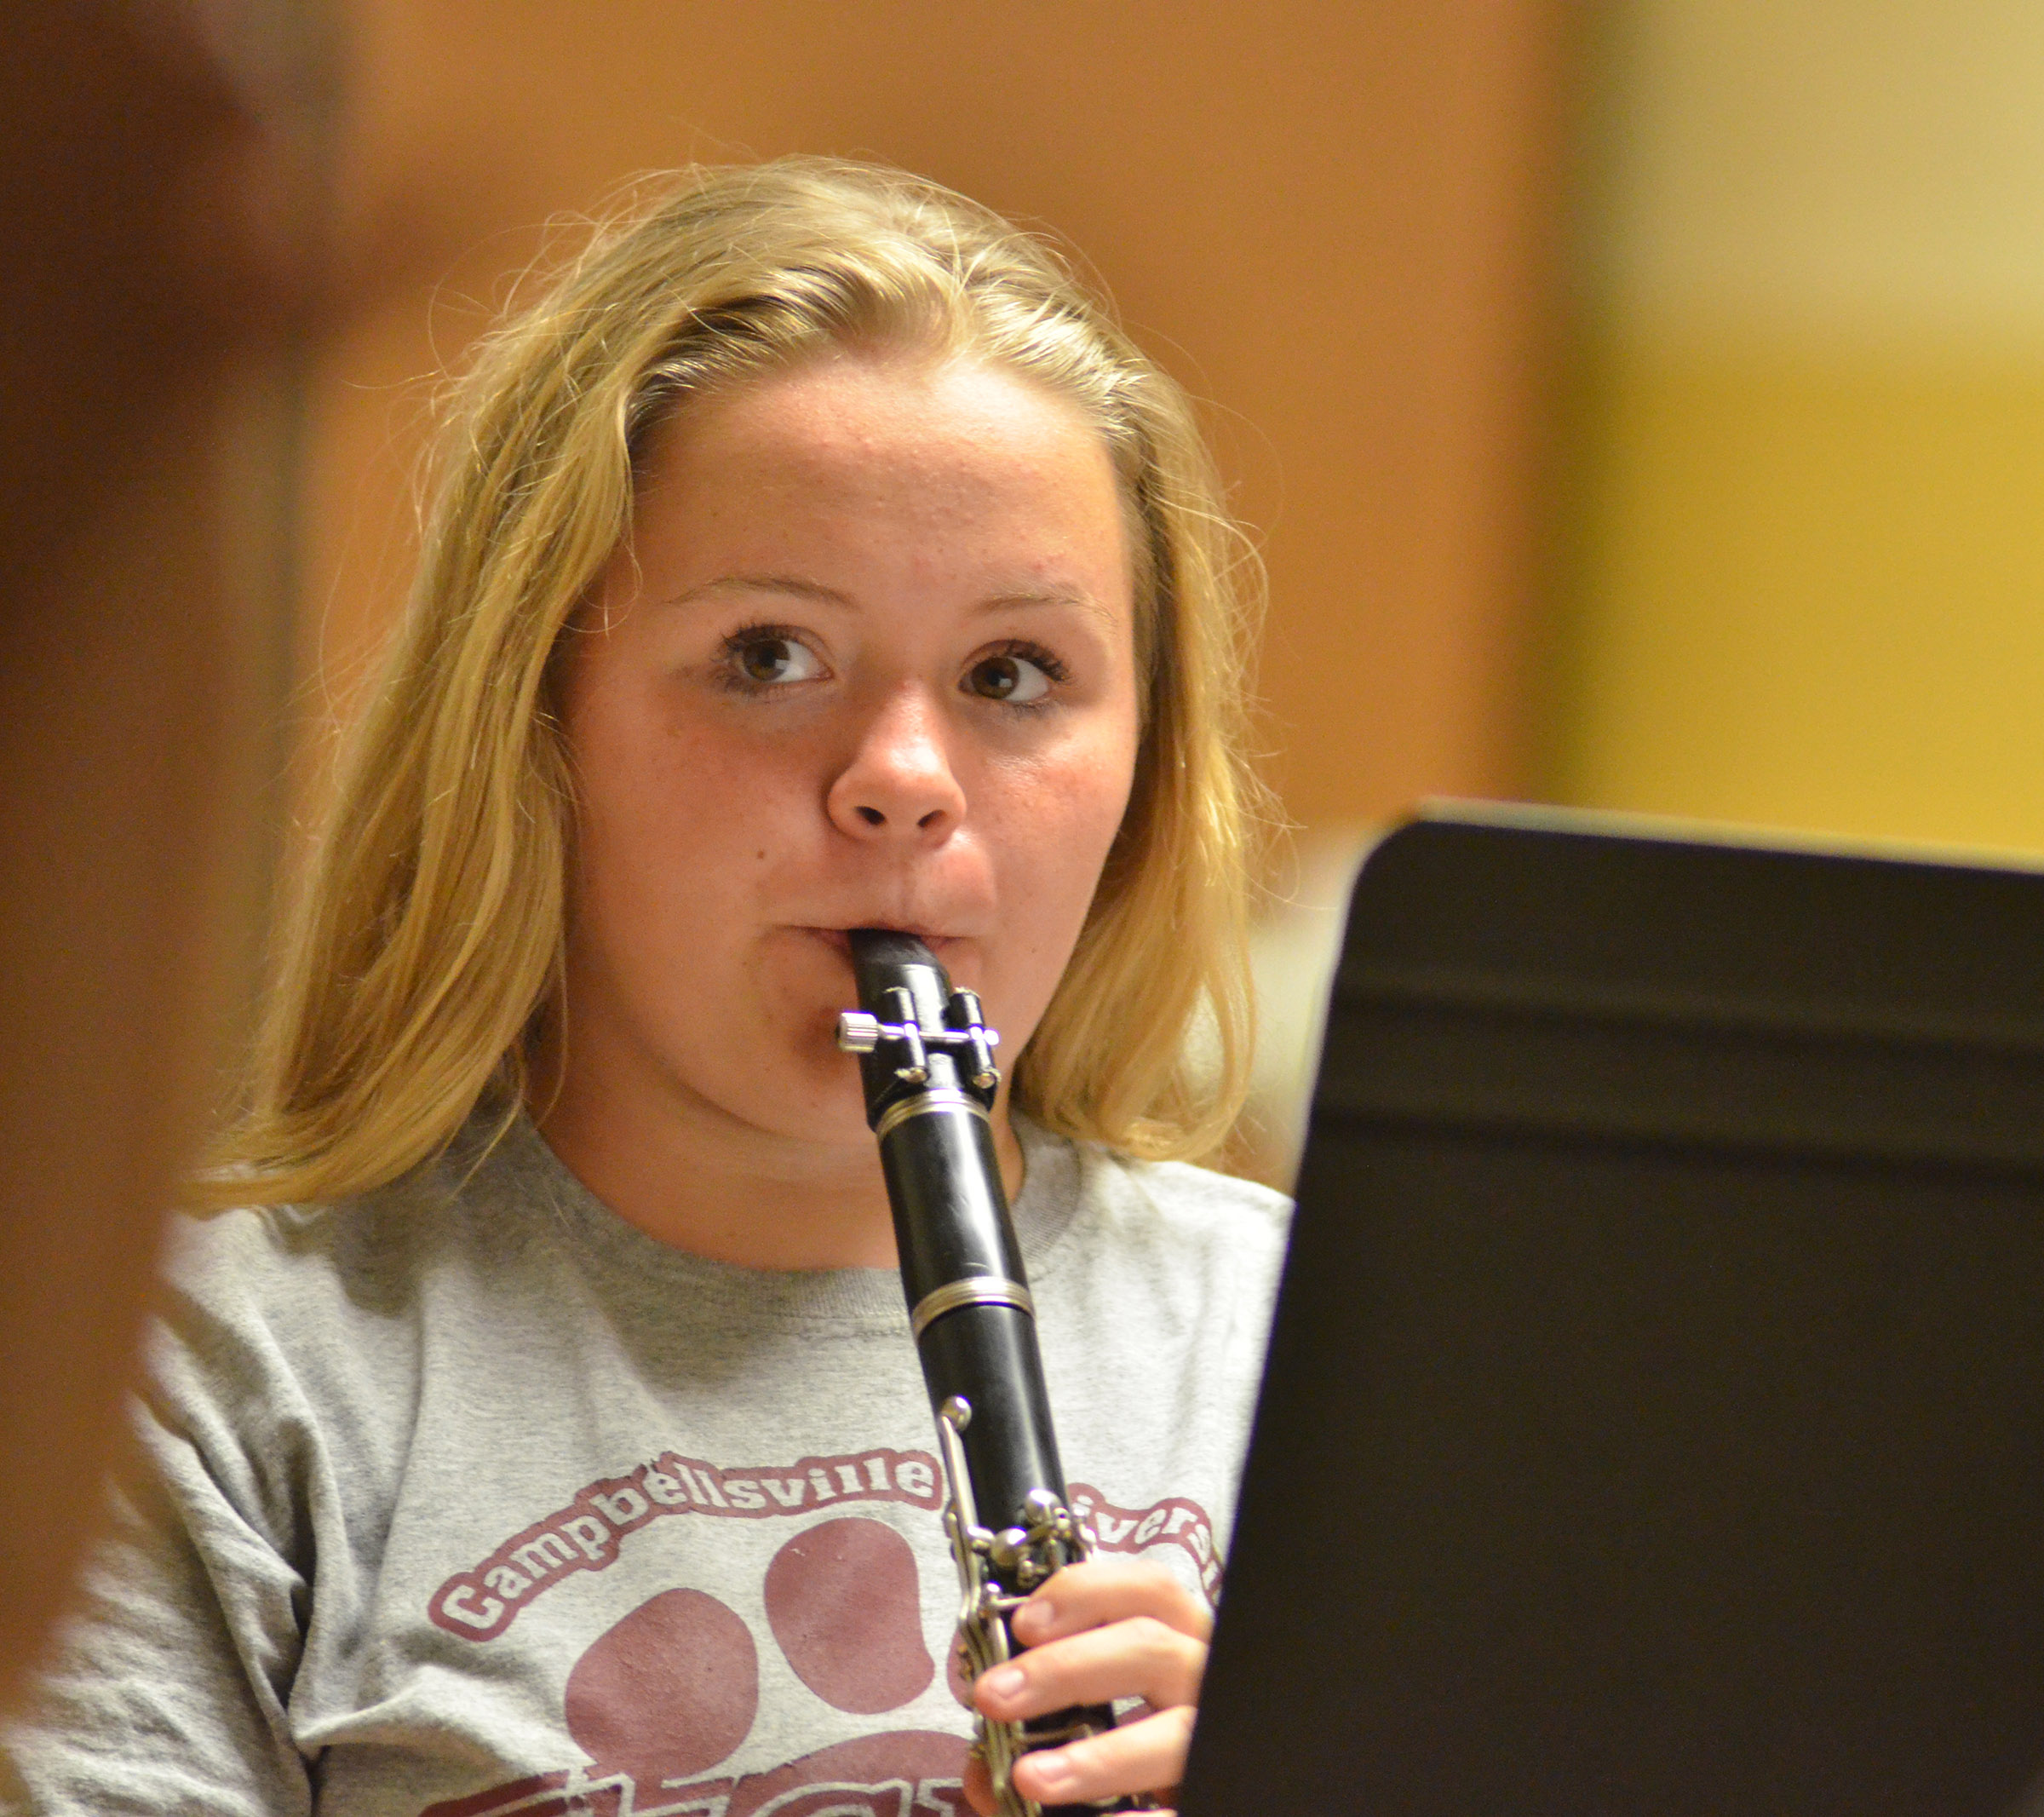 Campbellsville Middle School eighth-grader Riley Rainwater plays clarinet.